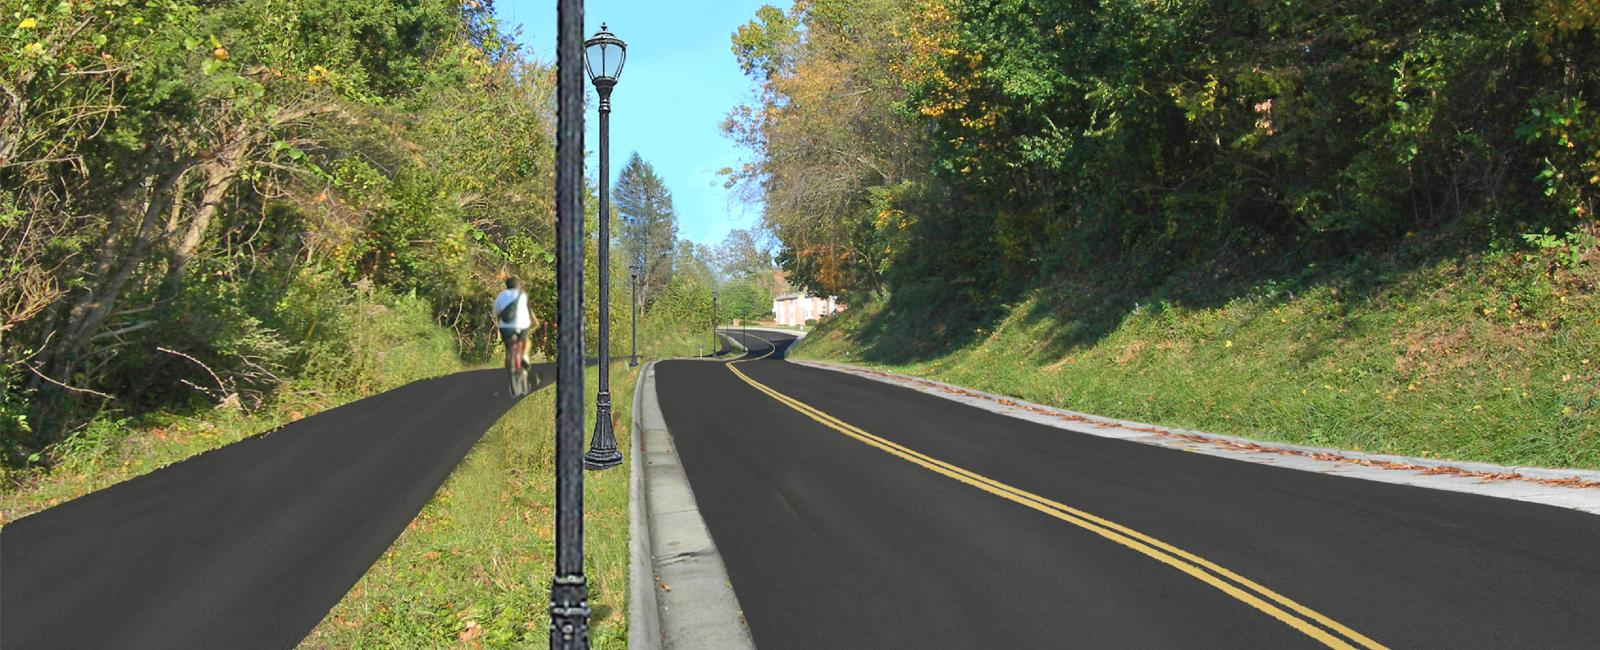 Road Safety Improvements including Bike Lanes, Sidewalks, Storm Drainage and Street Lighting